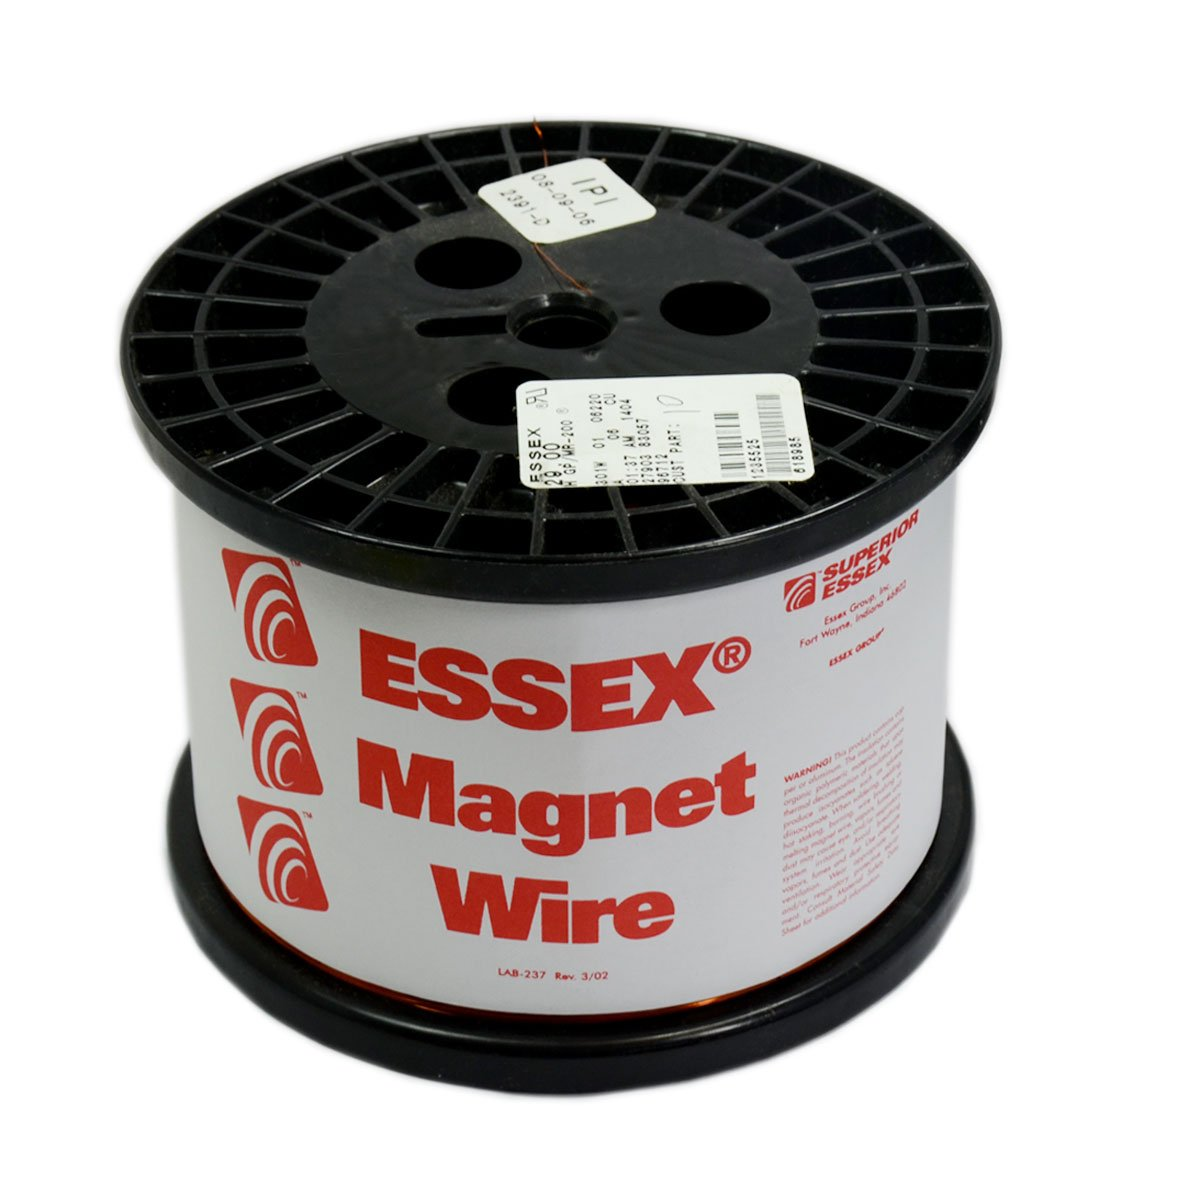 Essex Magnet Wire 29 AWG Enameled Heavy Build HTAIH GP/MR-200 10 LB Spool, Research Industrial Applications and Personal Projects